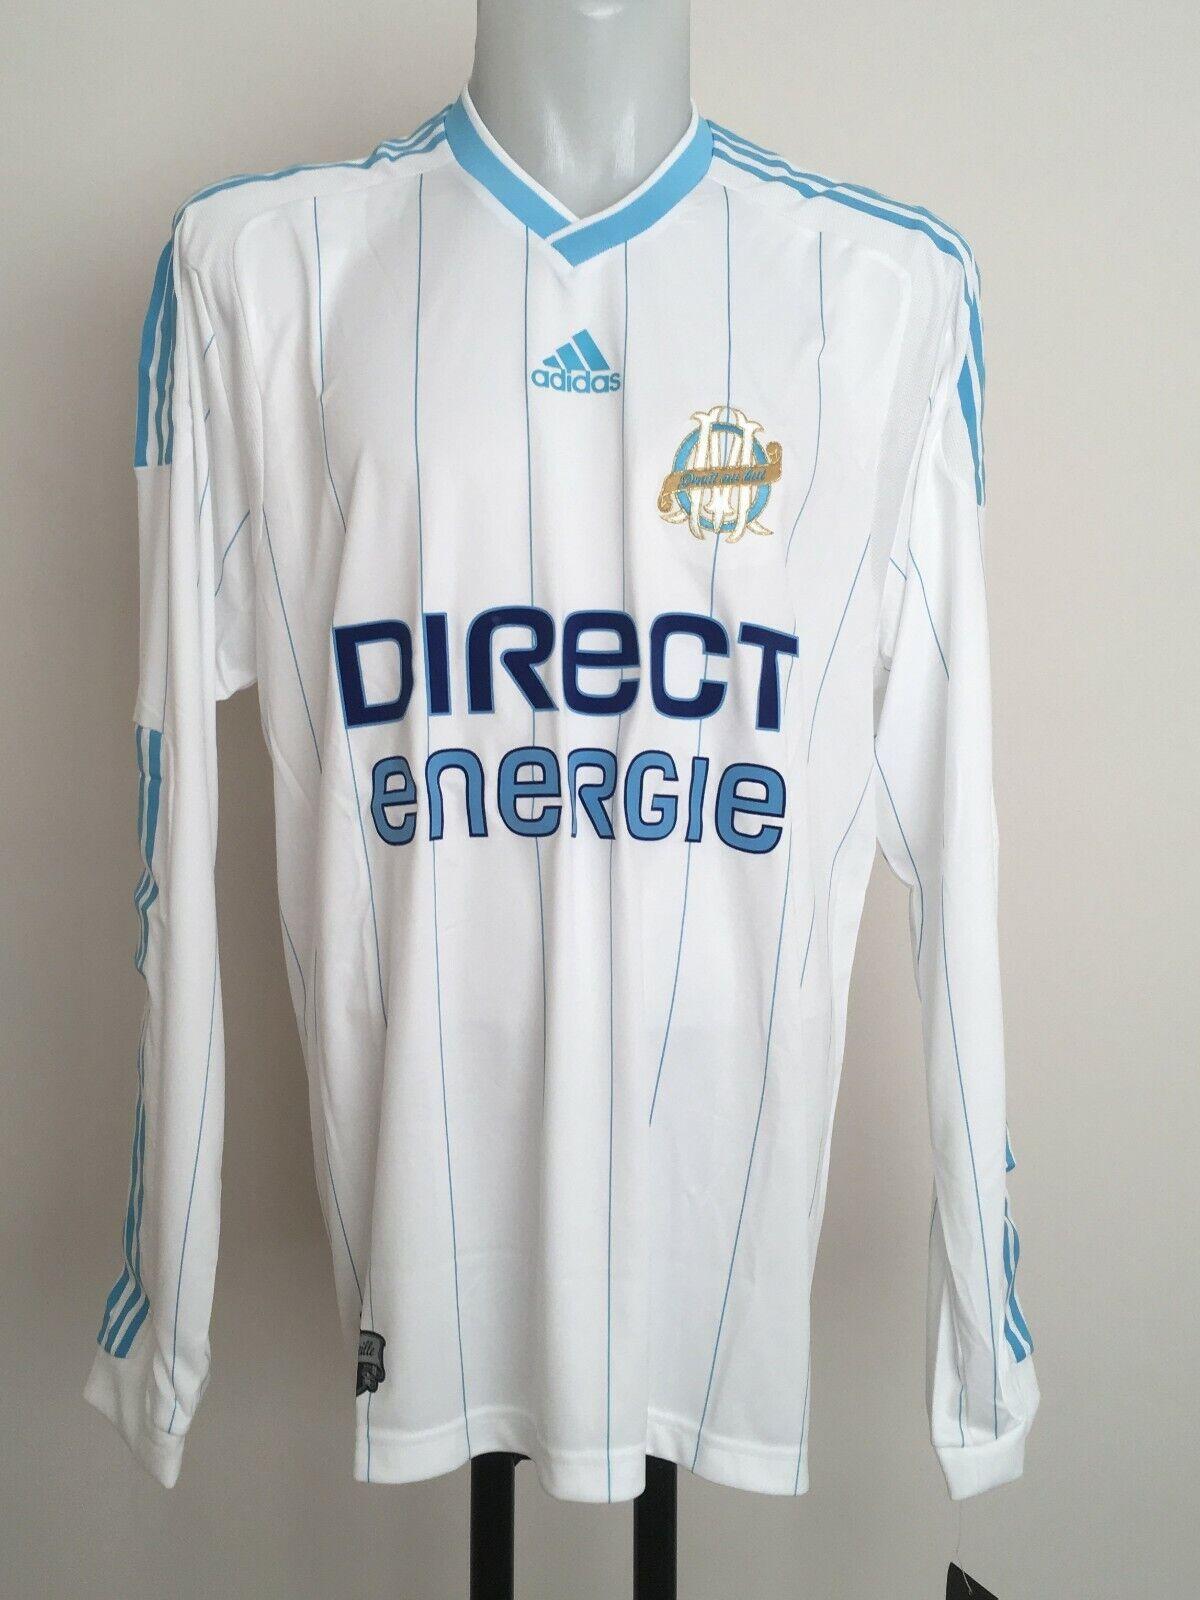 OLYMPIC MARSEILLE L S PLAYER ISSUE 2009-10 HOME SHIRT BY ADIDAS SIZE MEN'S XL